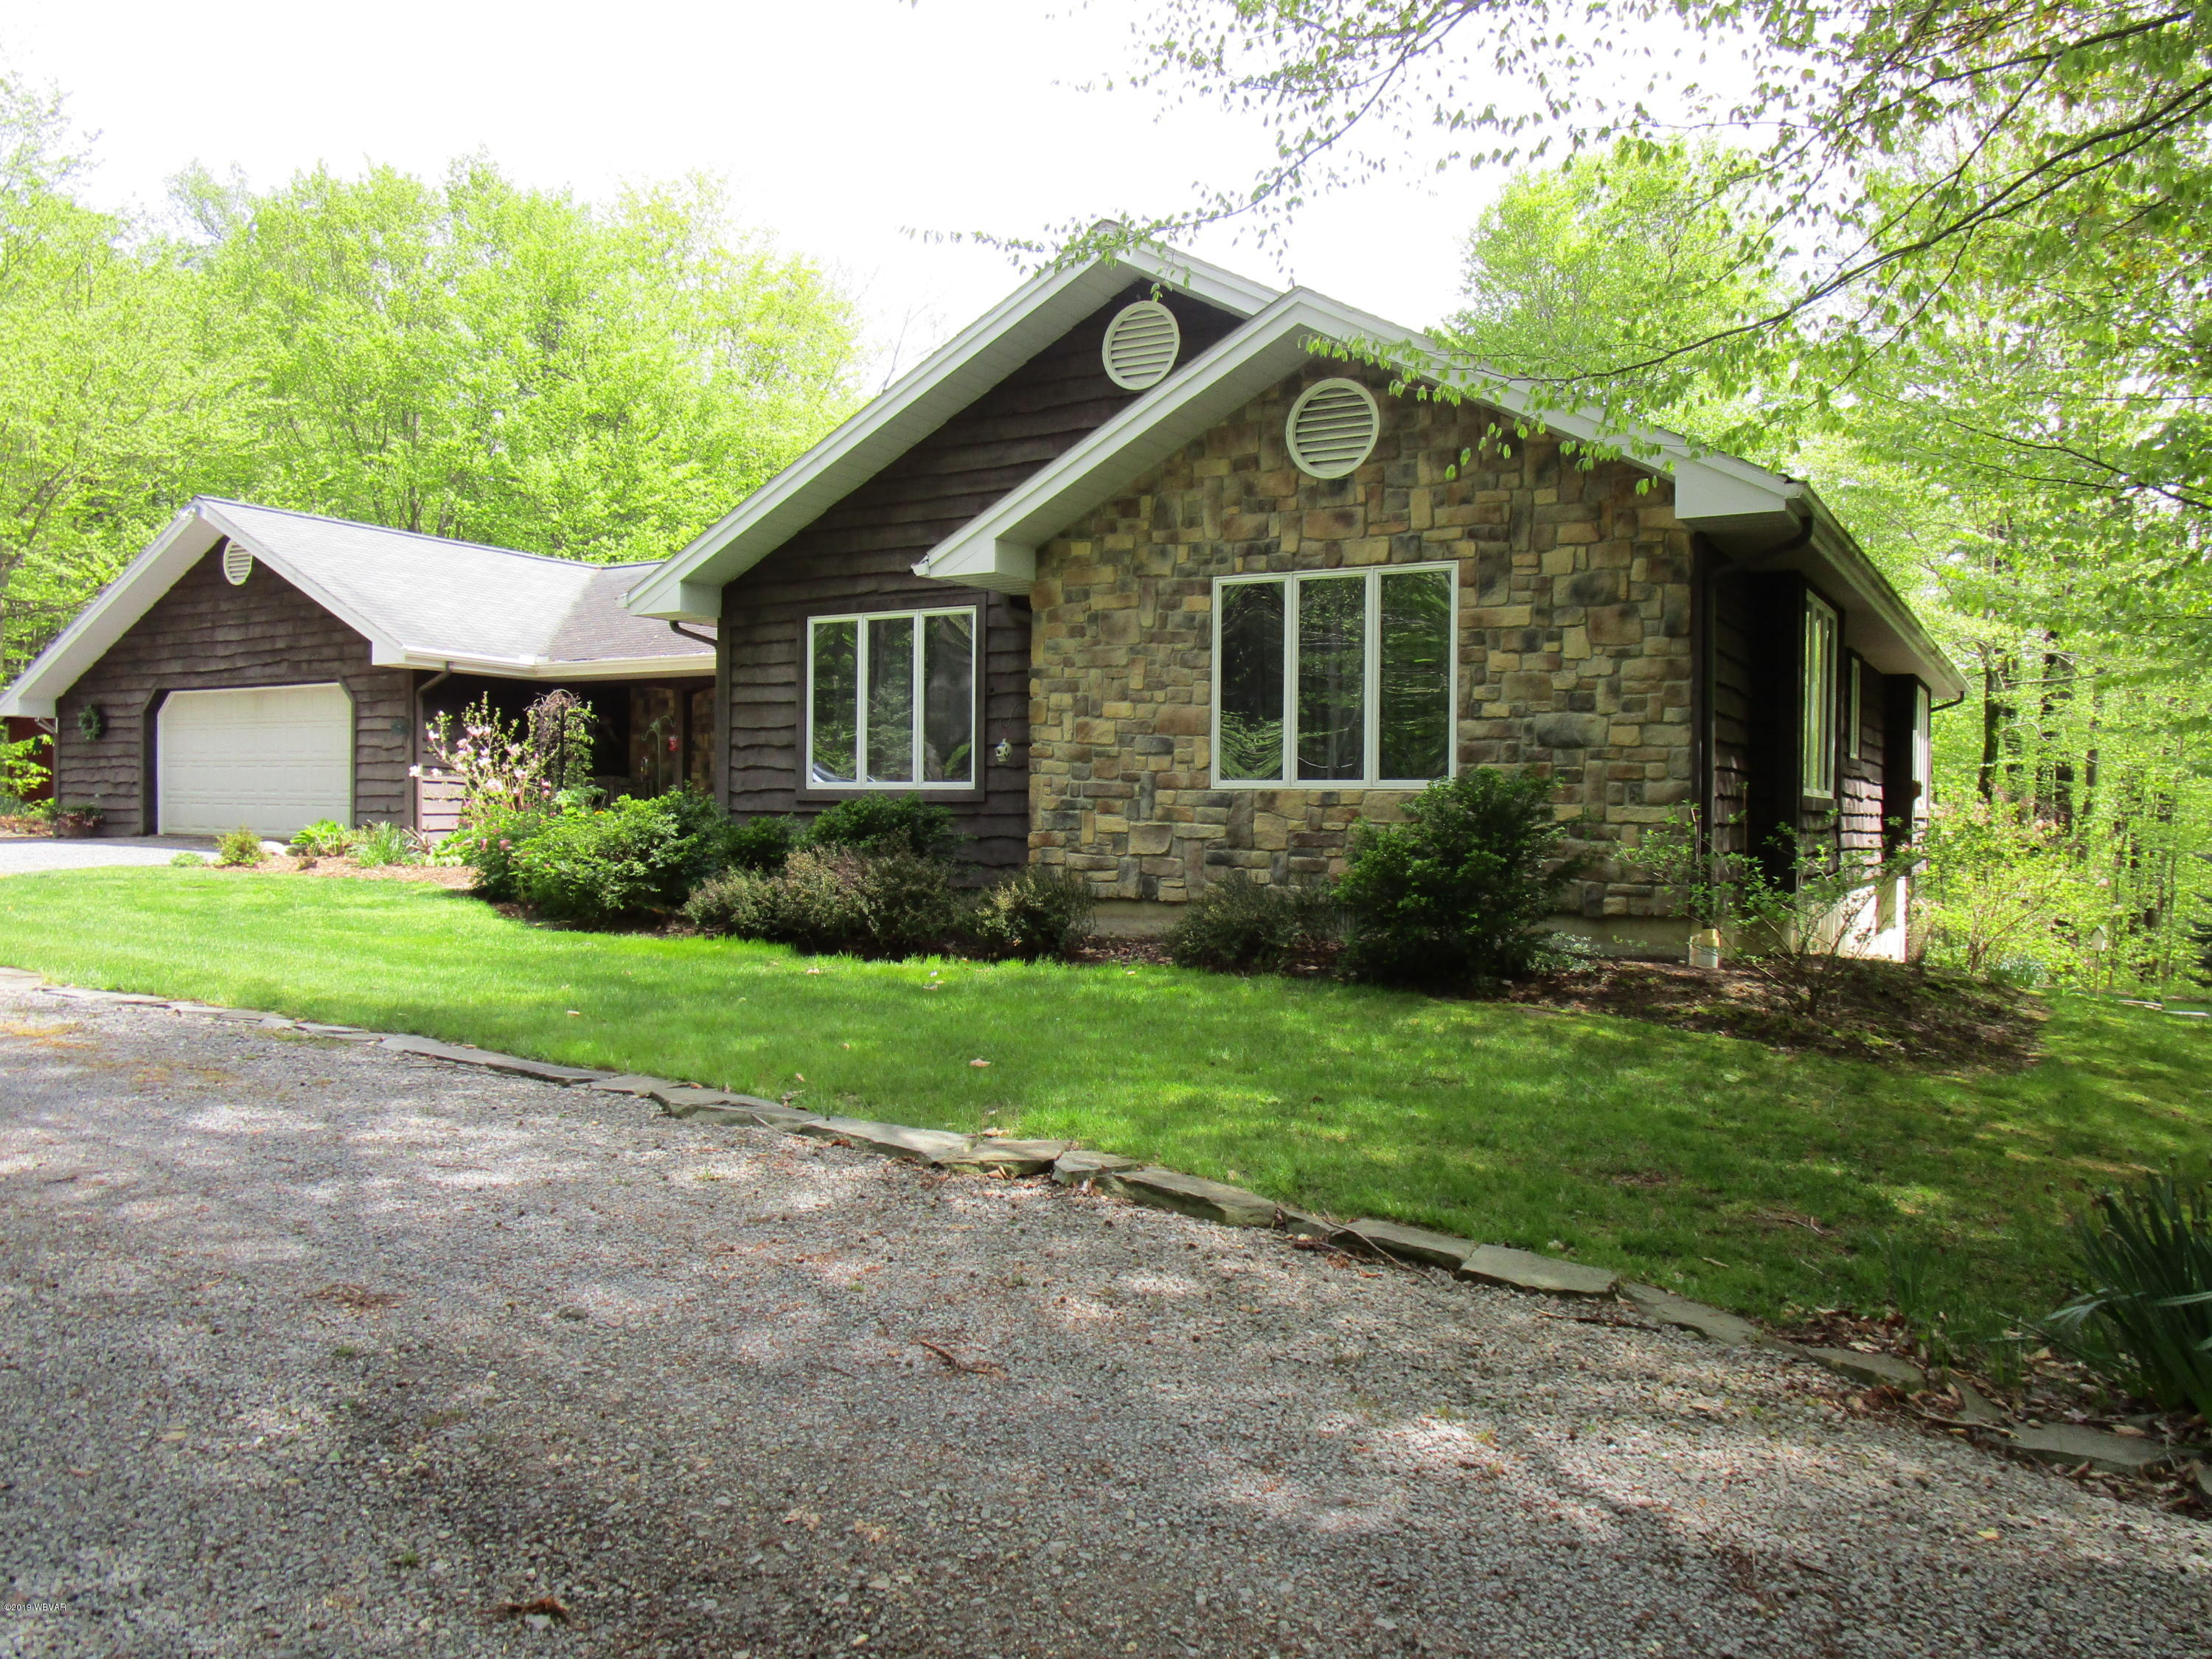 17170 PA-42 ROUTE,Laporte,PA 18626,3 Bedrooms Bedrooms,2.5 BathroomsBathrooms,Residential,PA-42,WB-86642